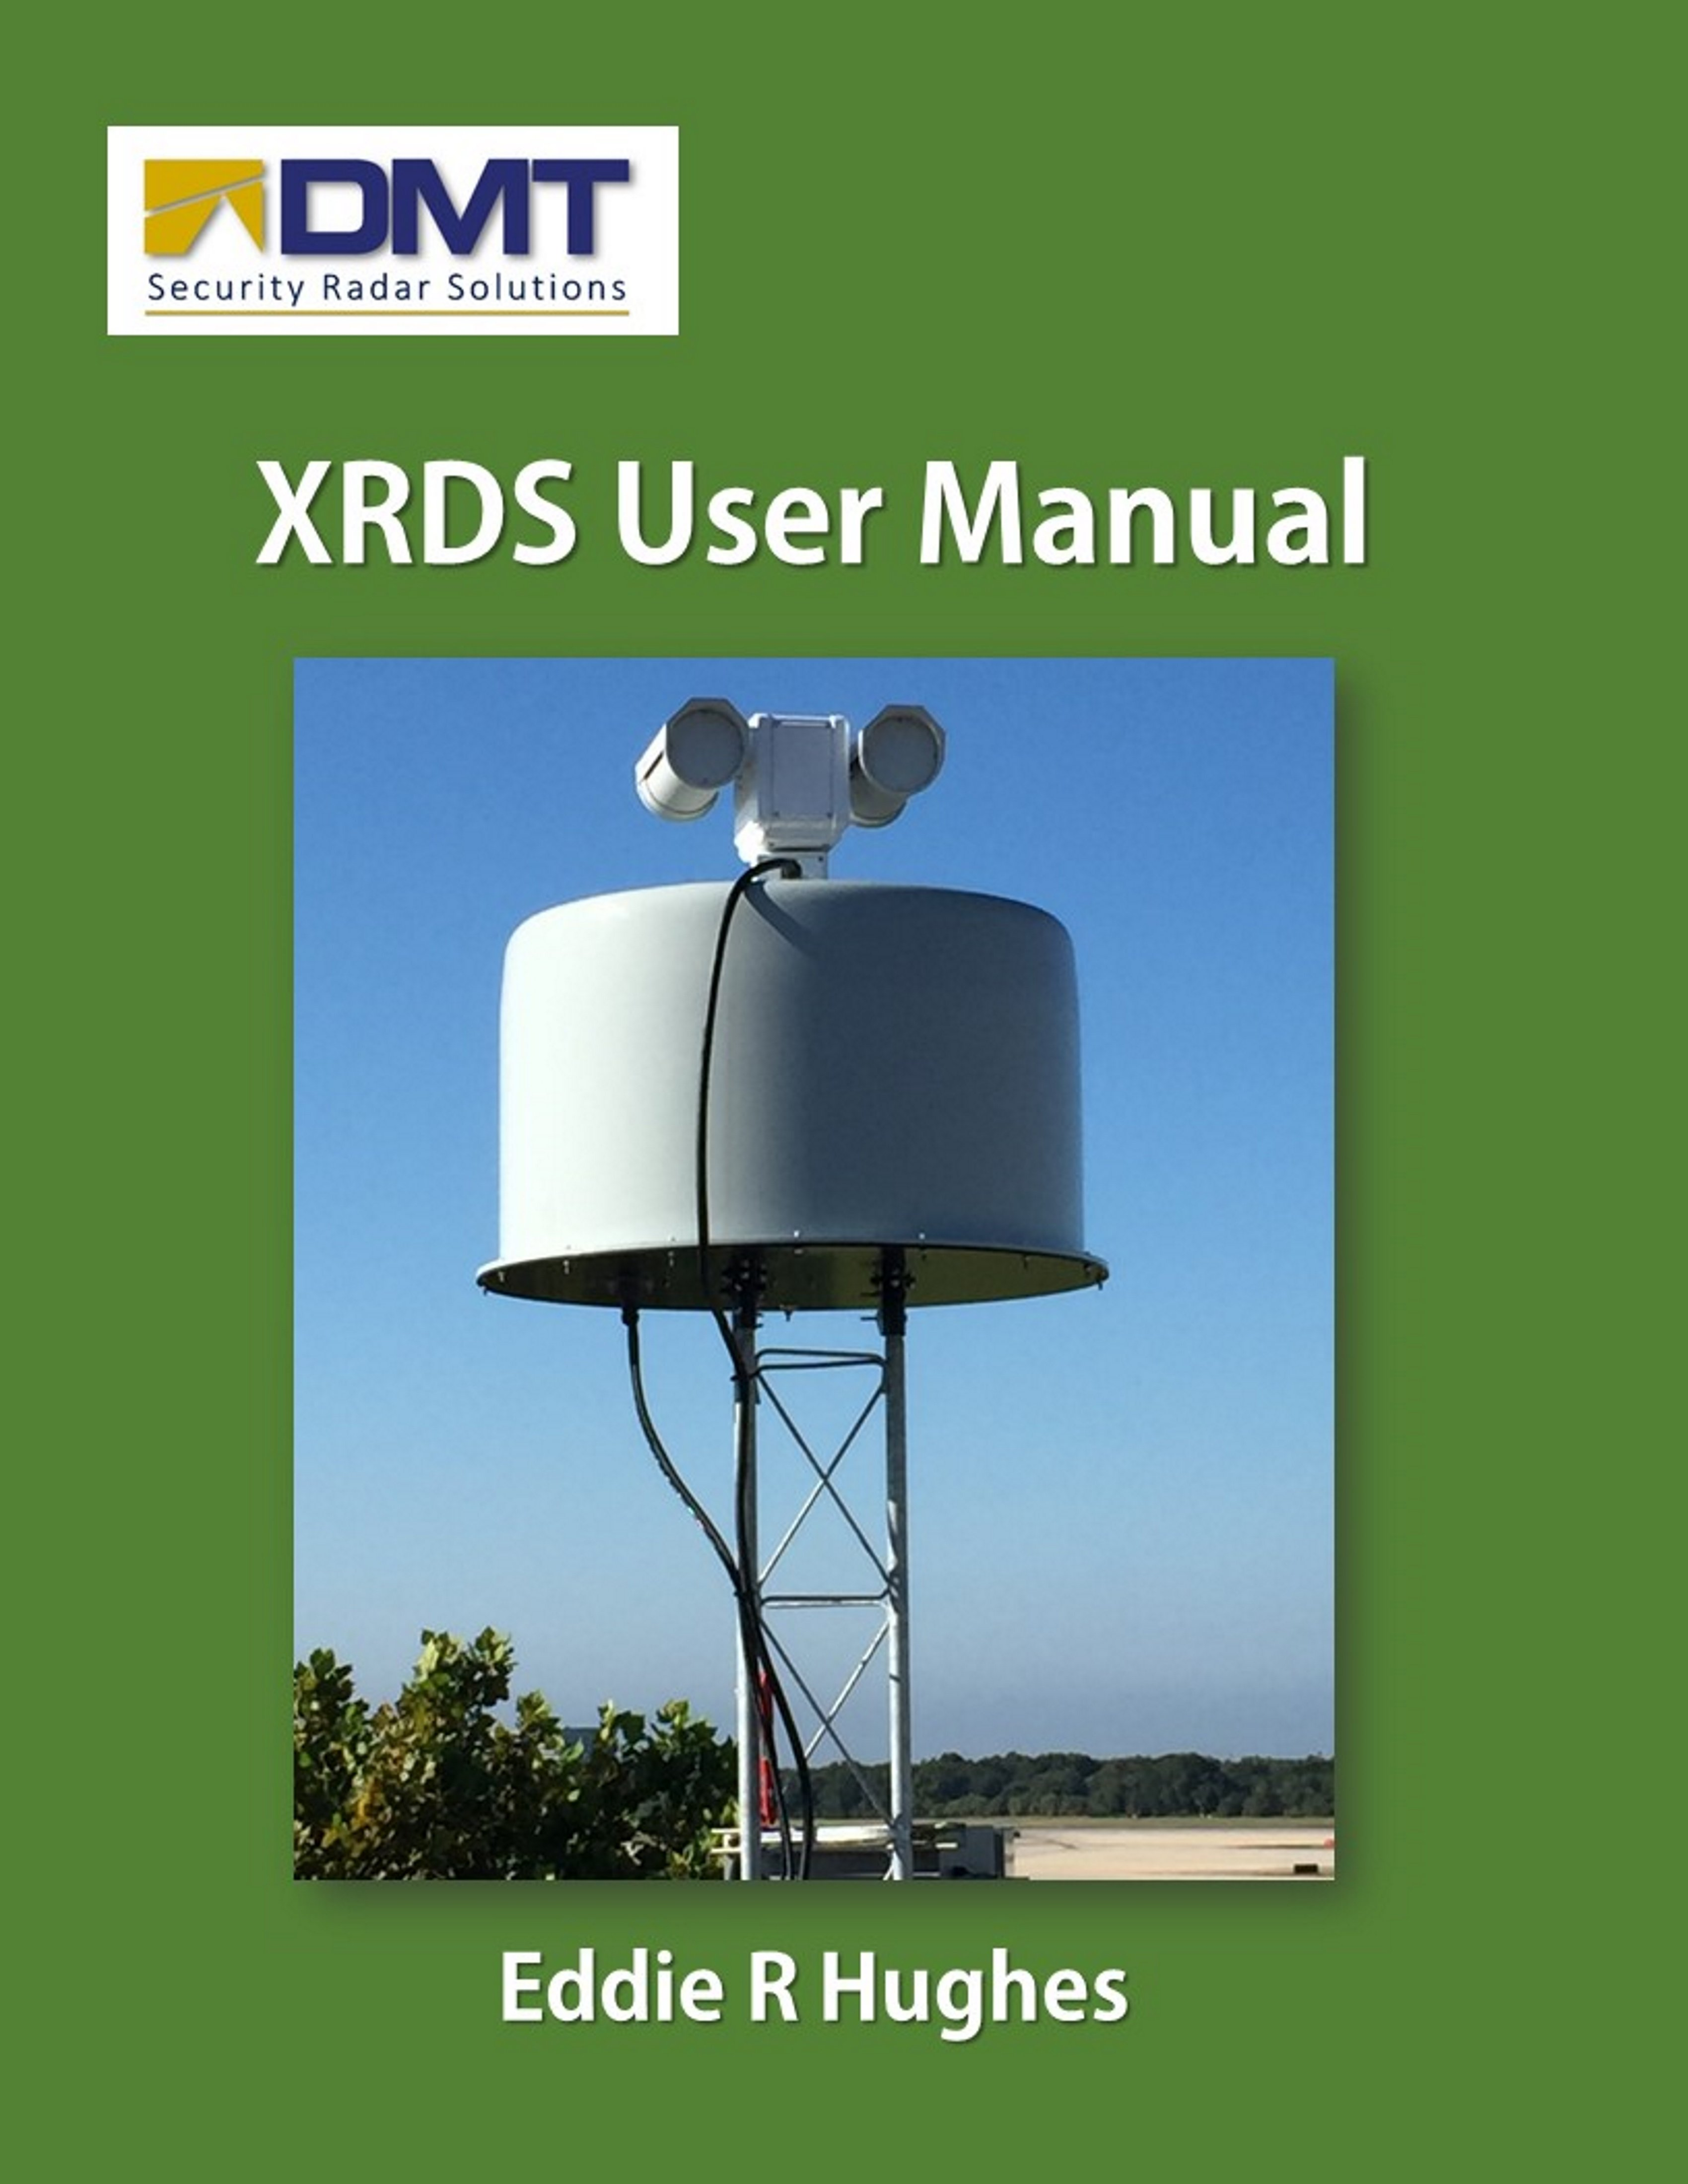 XRDS User Manual 00001